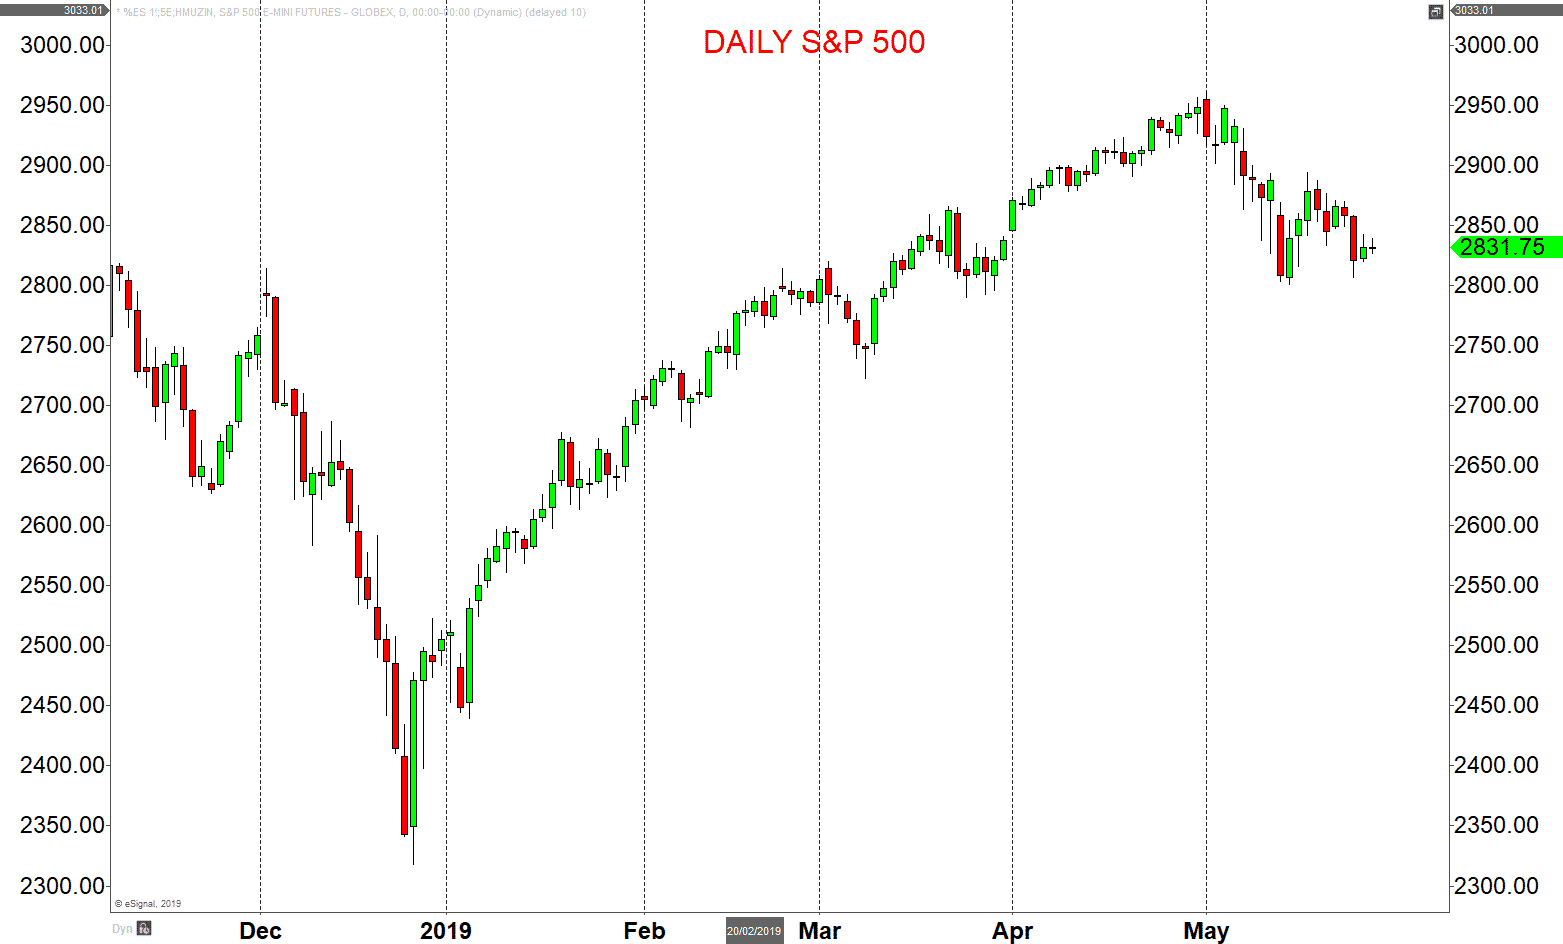 Daily SP 500